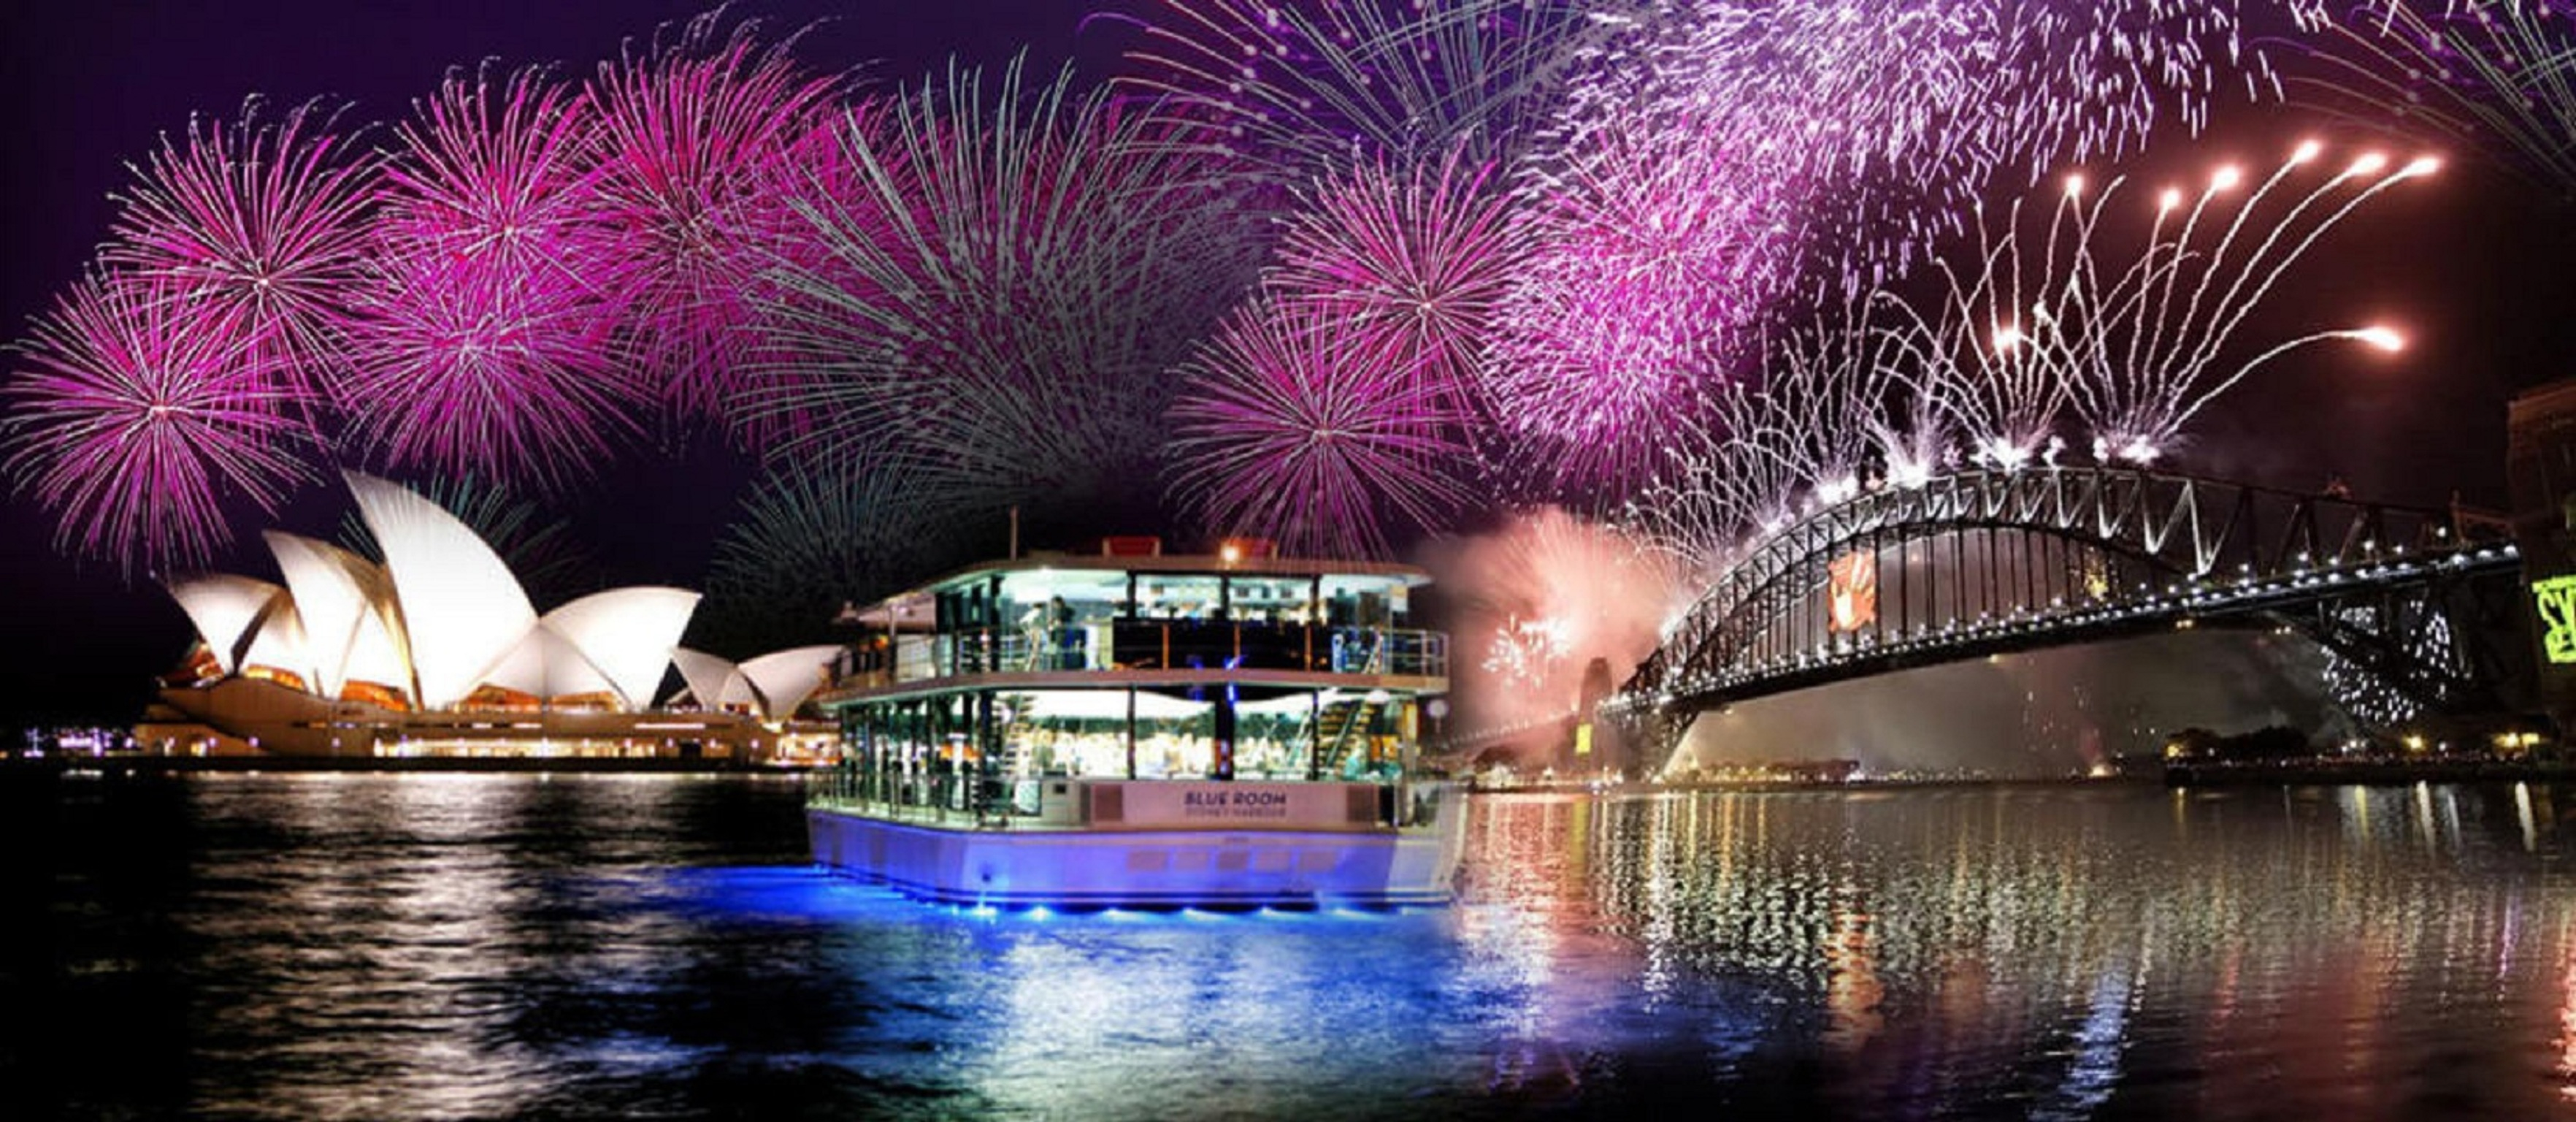 Celebrate New Year's Eve in Sydney on a Premium Glass Boat, Sydney, New South Wales, Australia